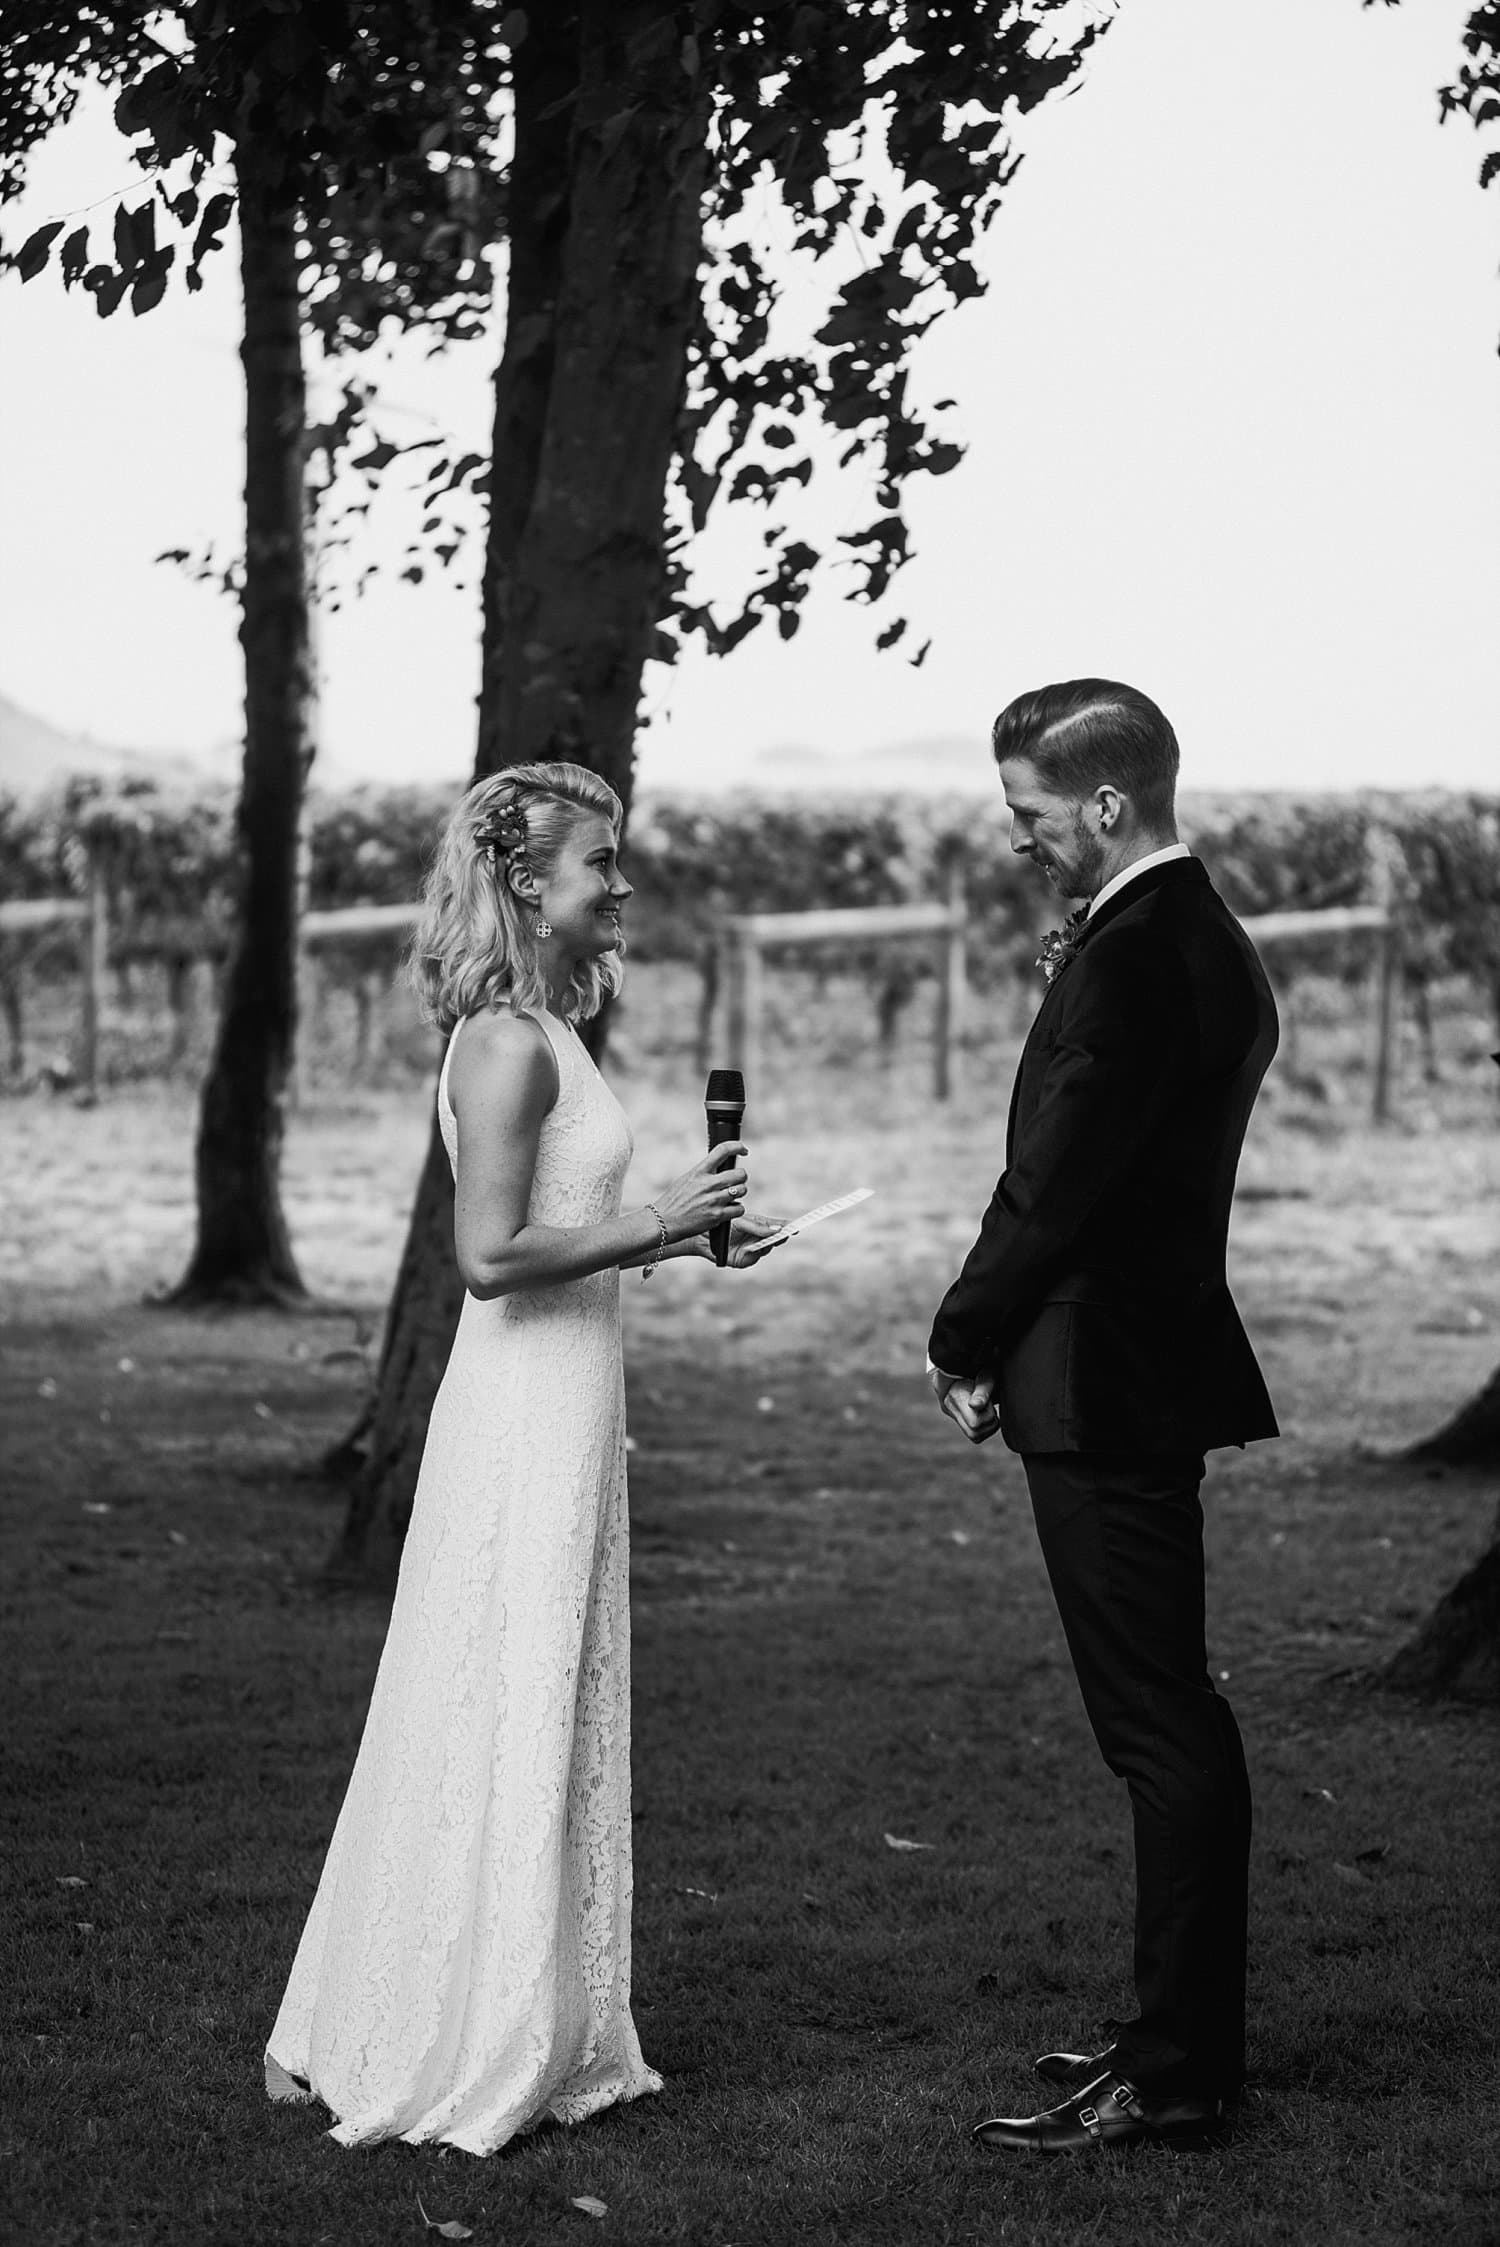 Sarah & Max - Te Awa Winery Wedding, Hawke's Bay | www.meredithlord.com